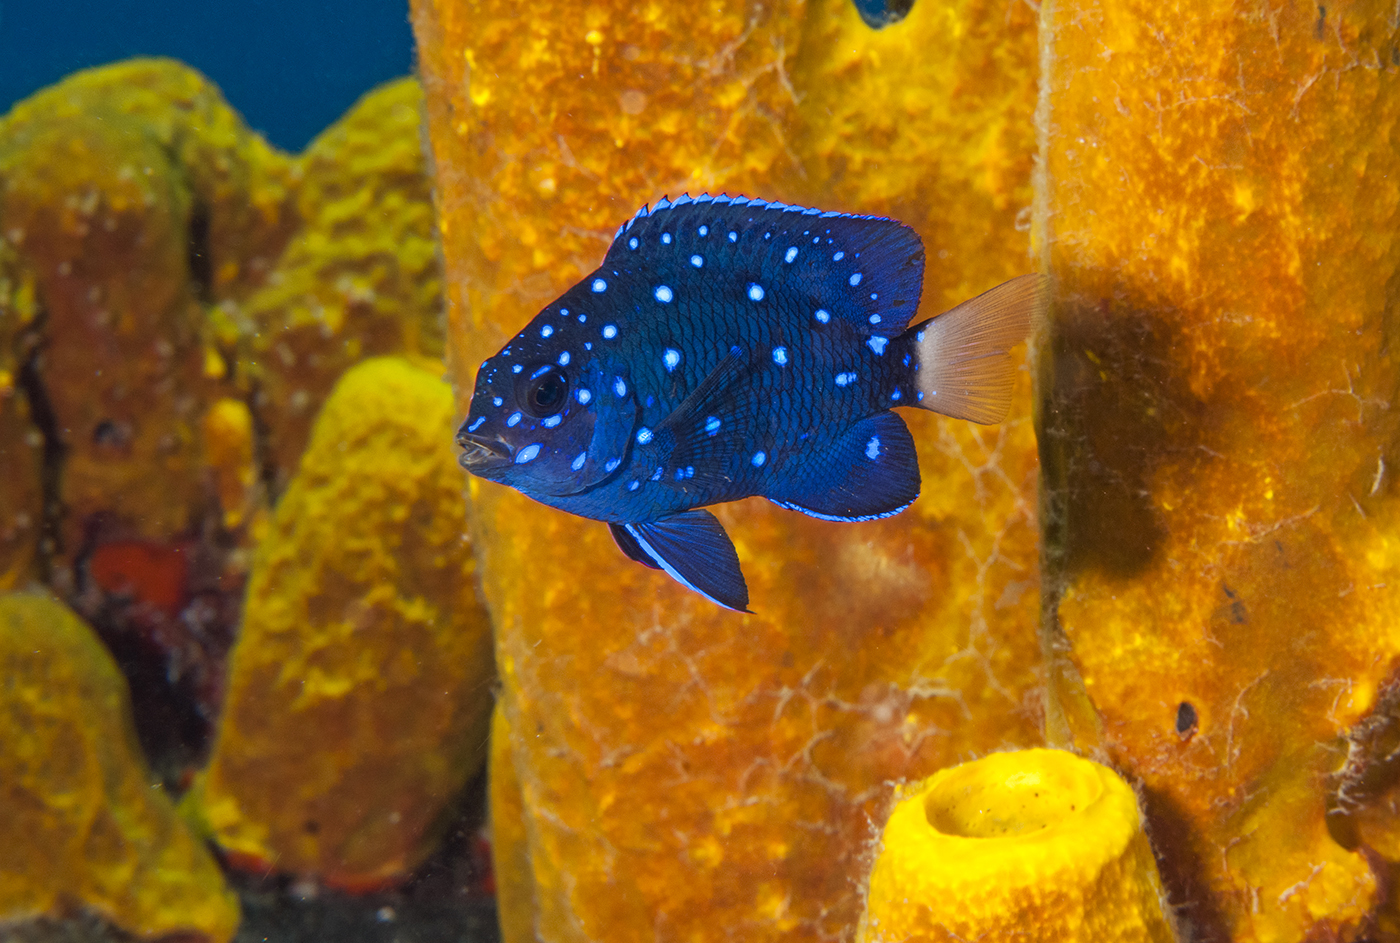 The waters of Guanaja are populated by hundreds of varieties of colorful tropical fish such as this yellowtail damselfish.